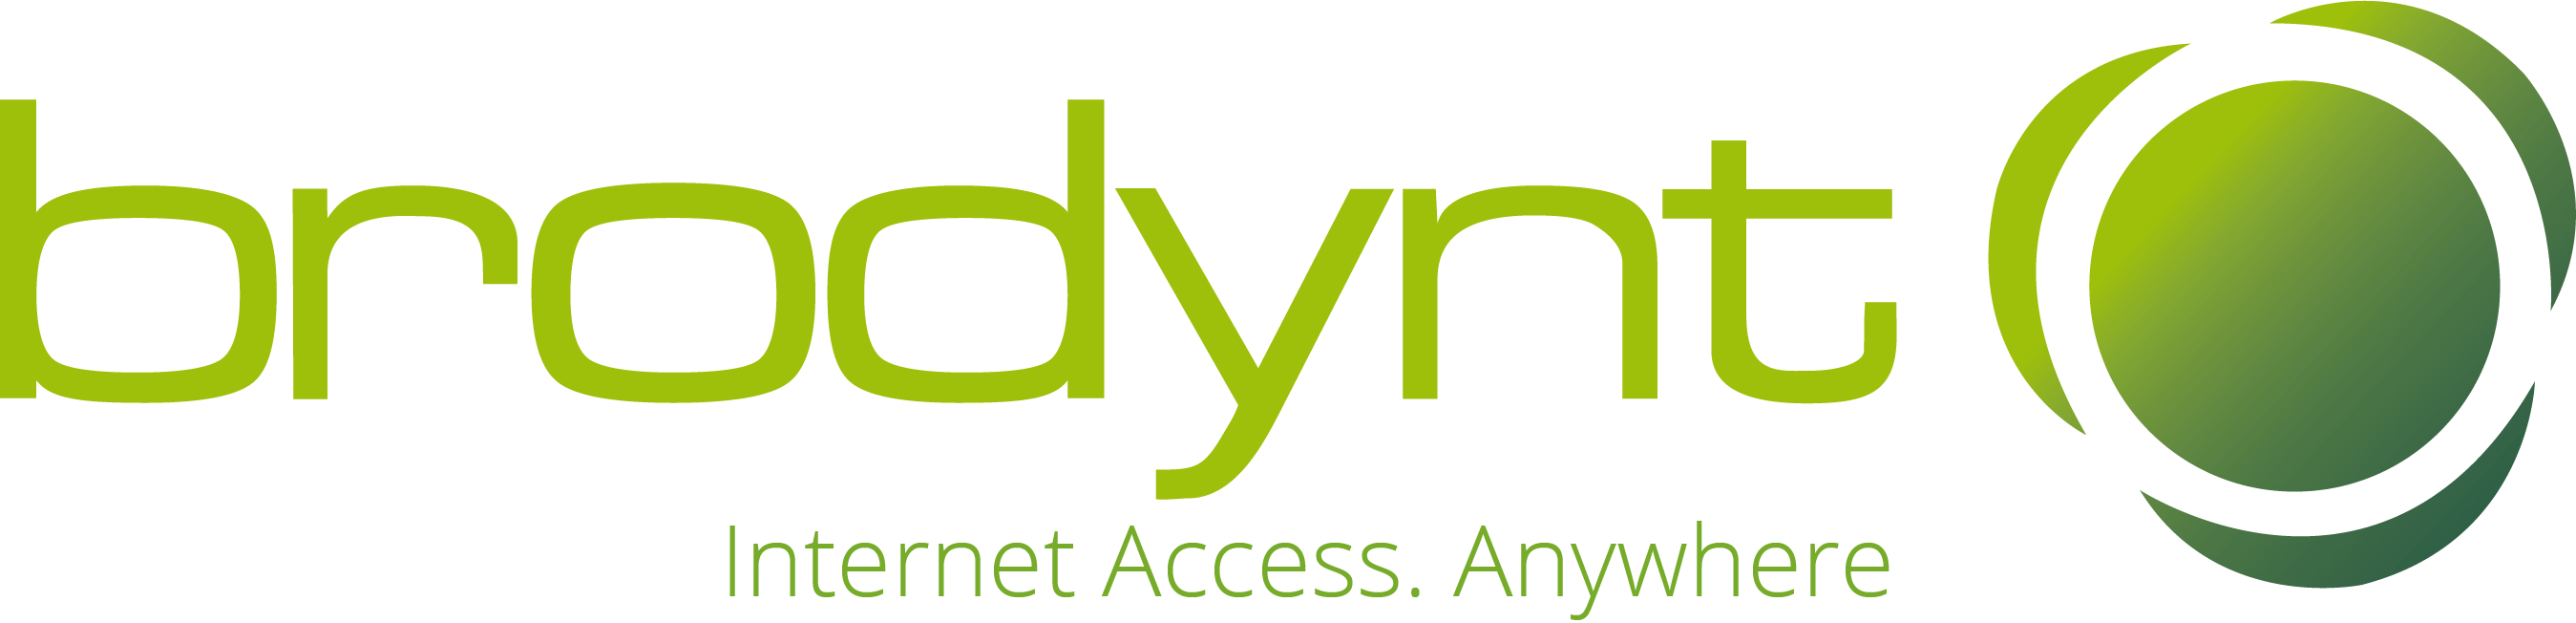 Expereo has acquired Brodynt Global Services, one of the most relevant acquisitions in June 2021 in Spain.